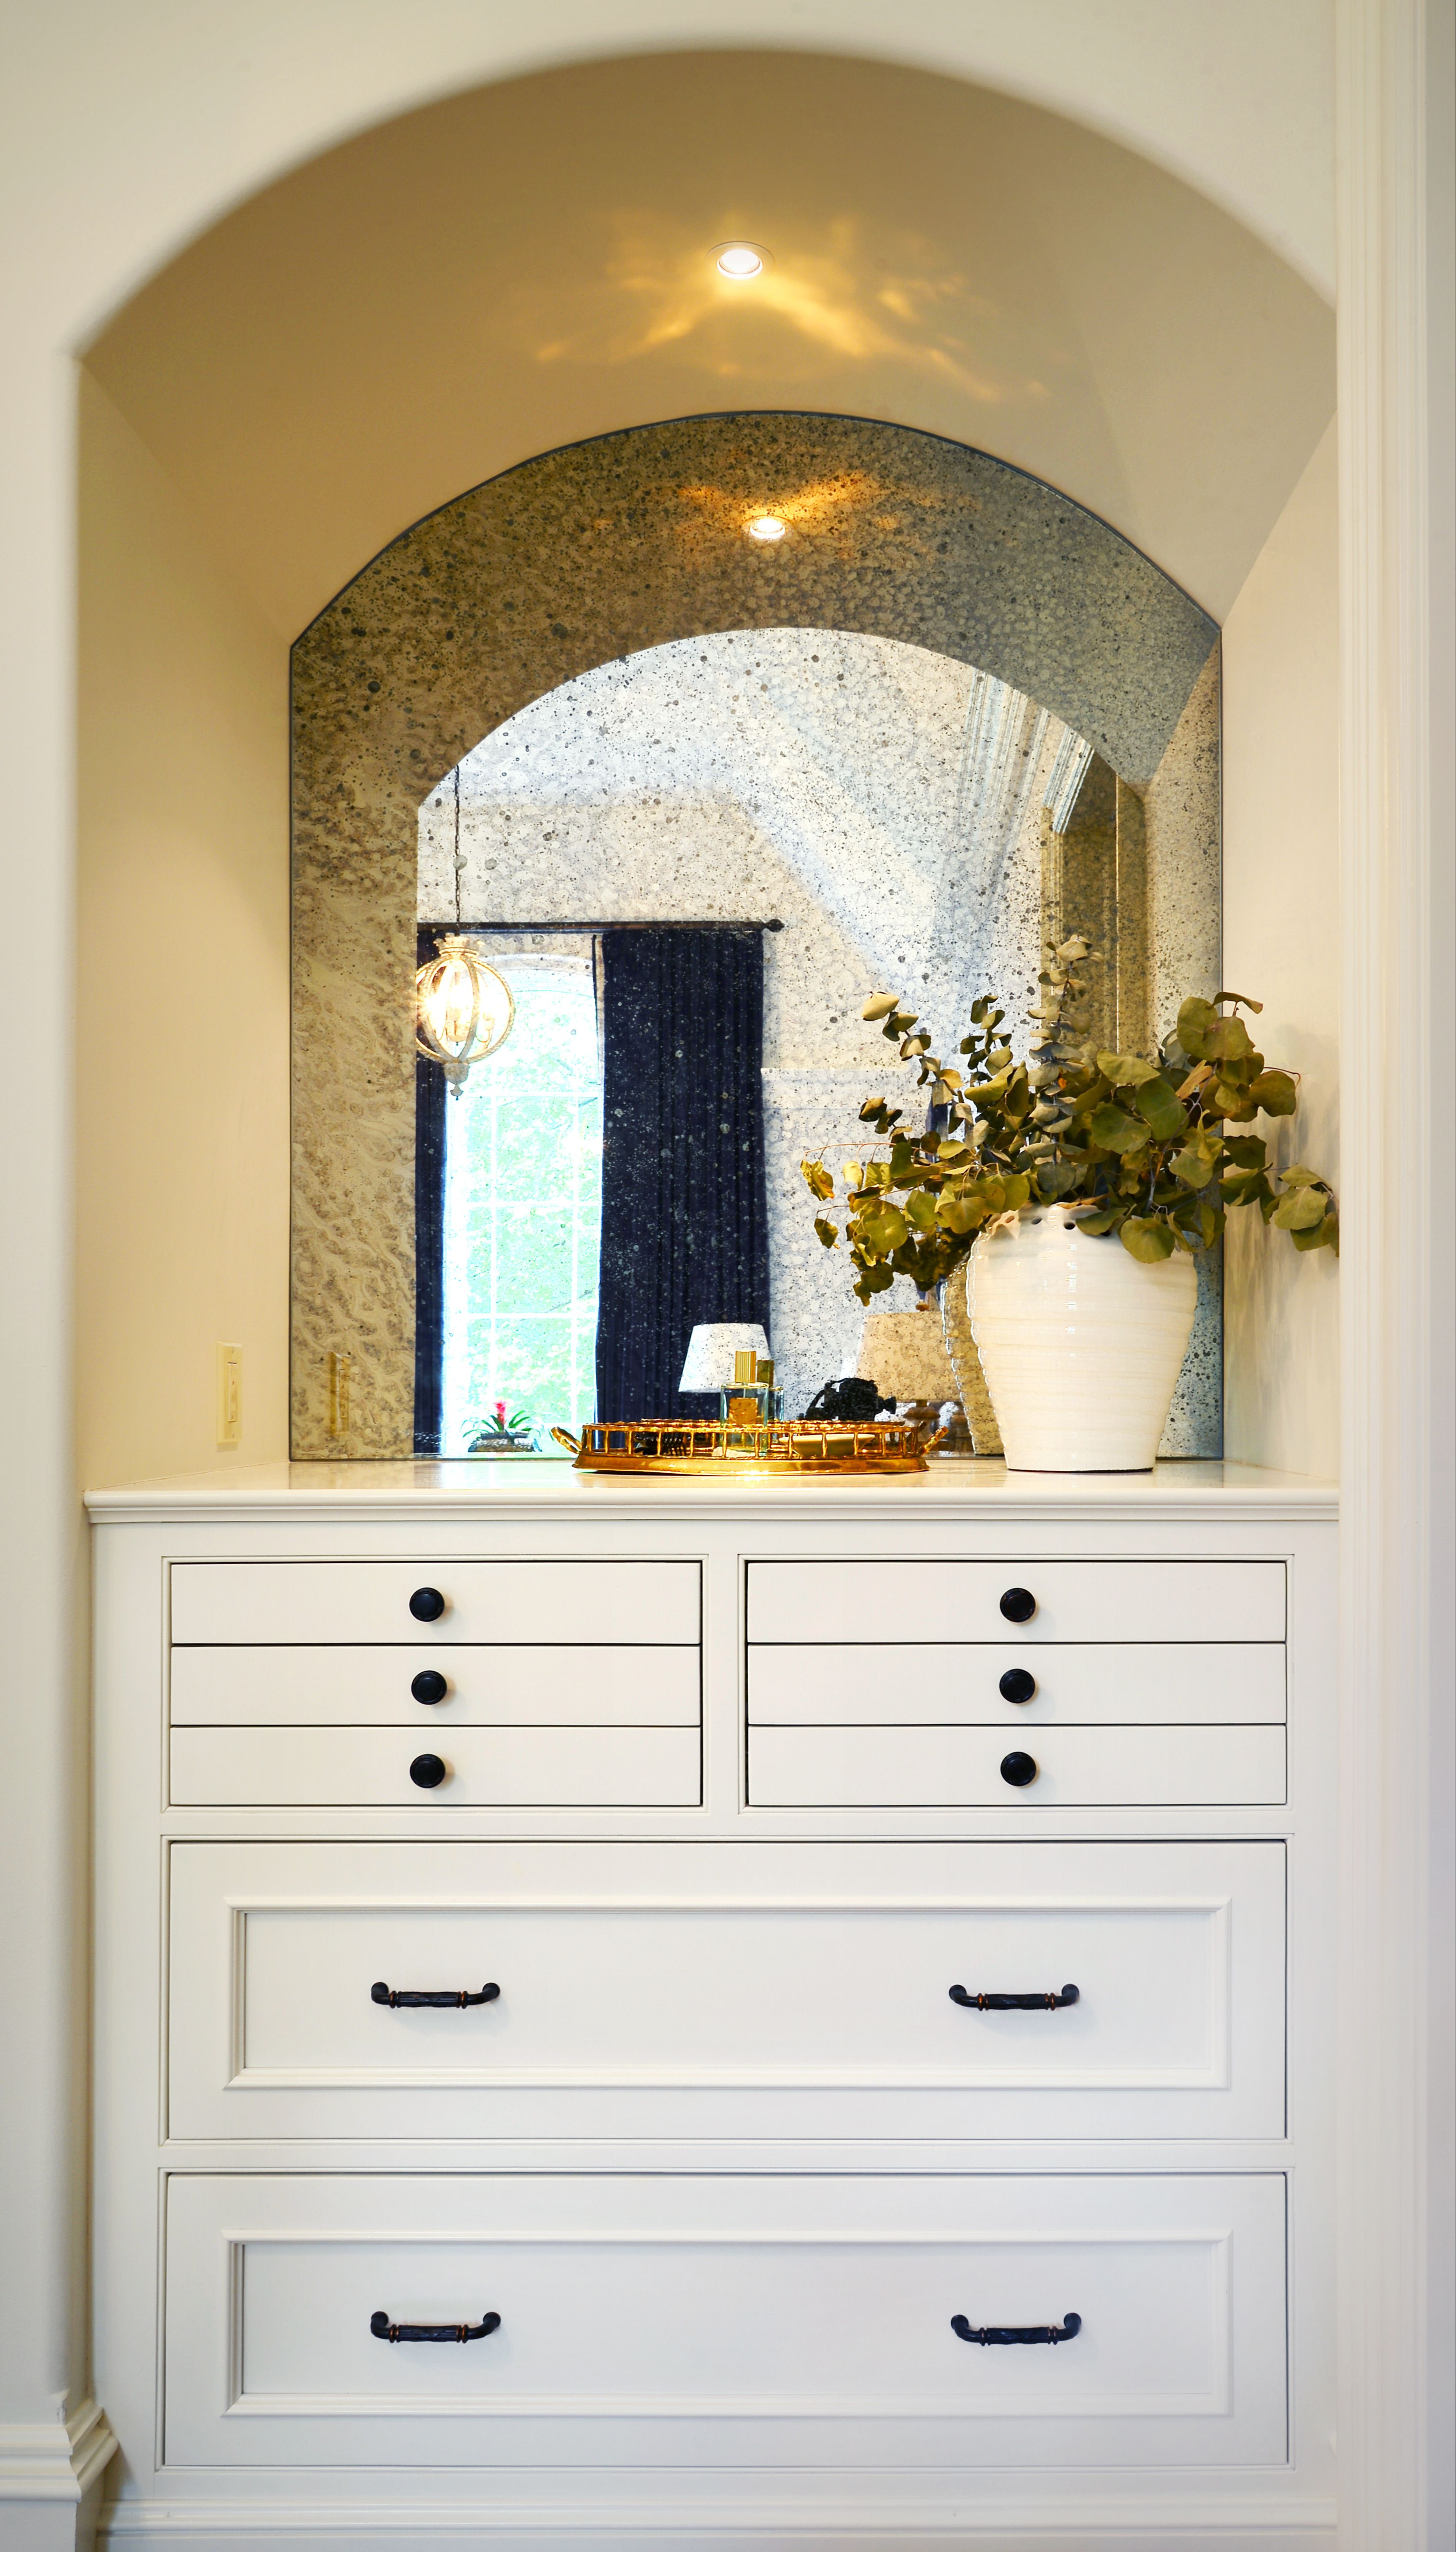 Stylecraft cabinets - Built In Cabinets